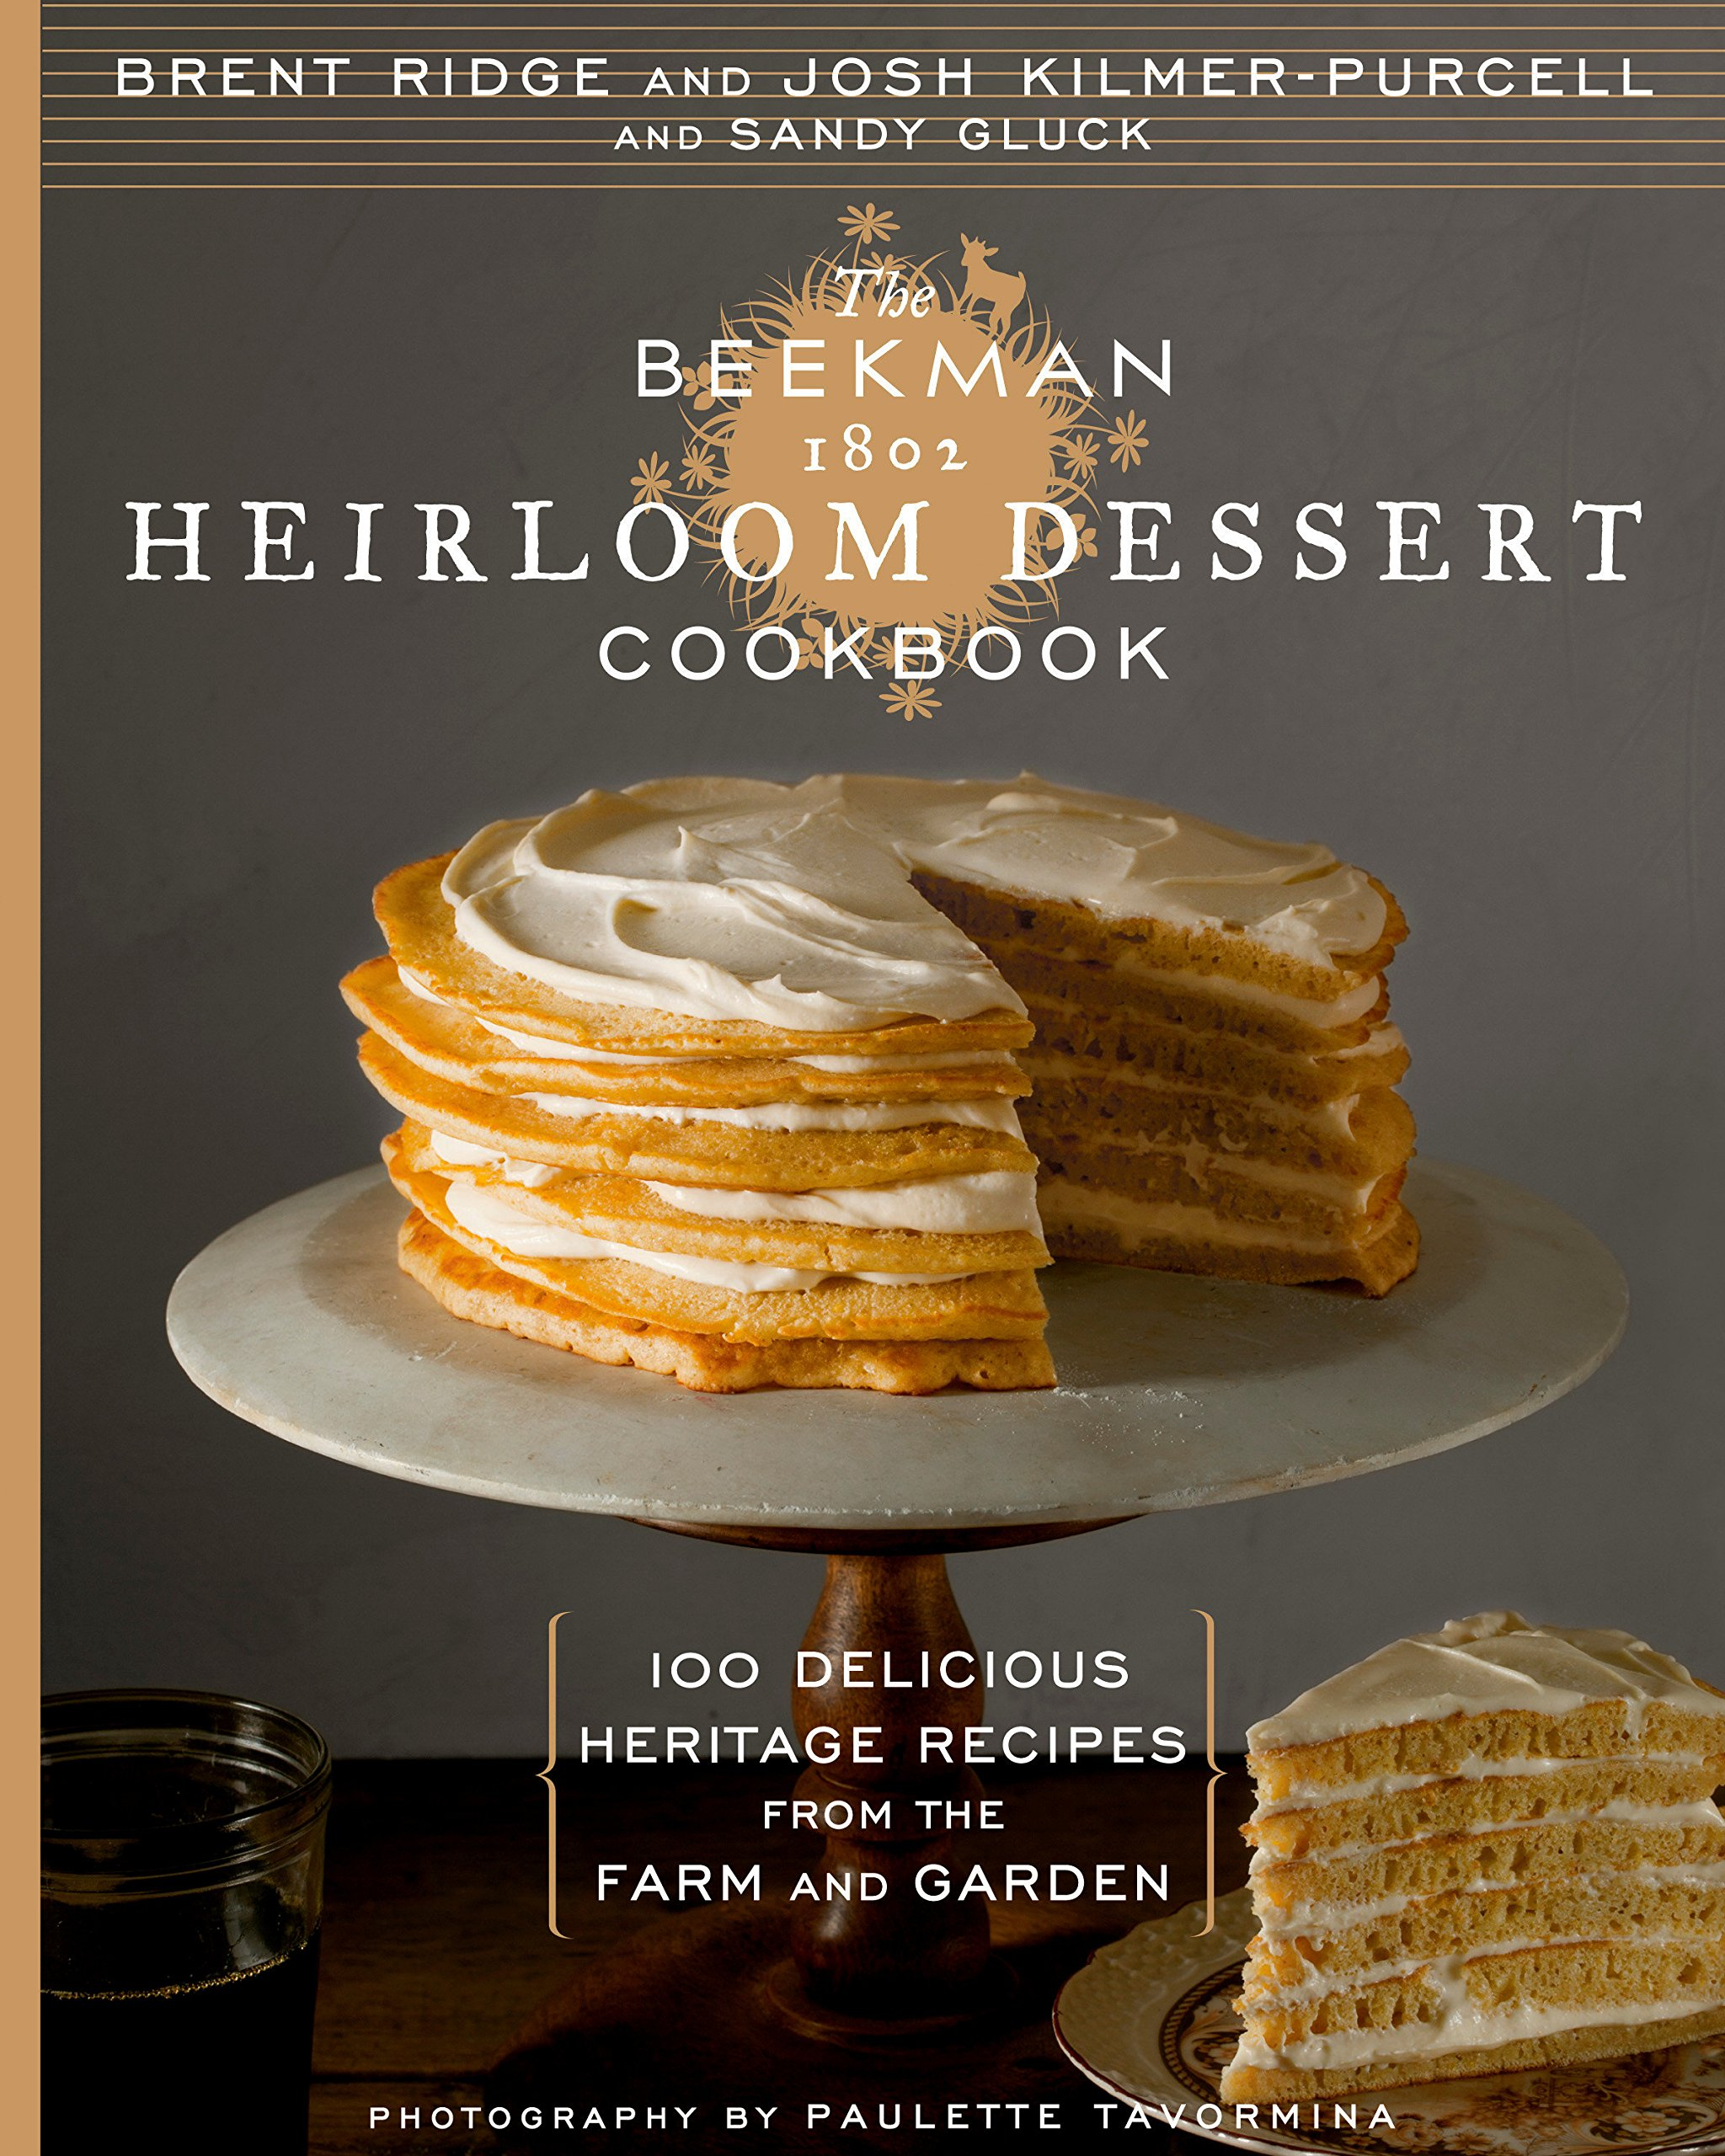 The Beekman 1802 Heirloom Dessert Cookbook: 100 Delicious Heritage Recipes from the Farm and Garden by Brand: Rodale Books